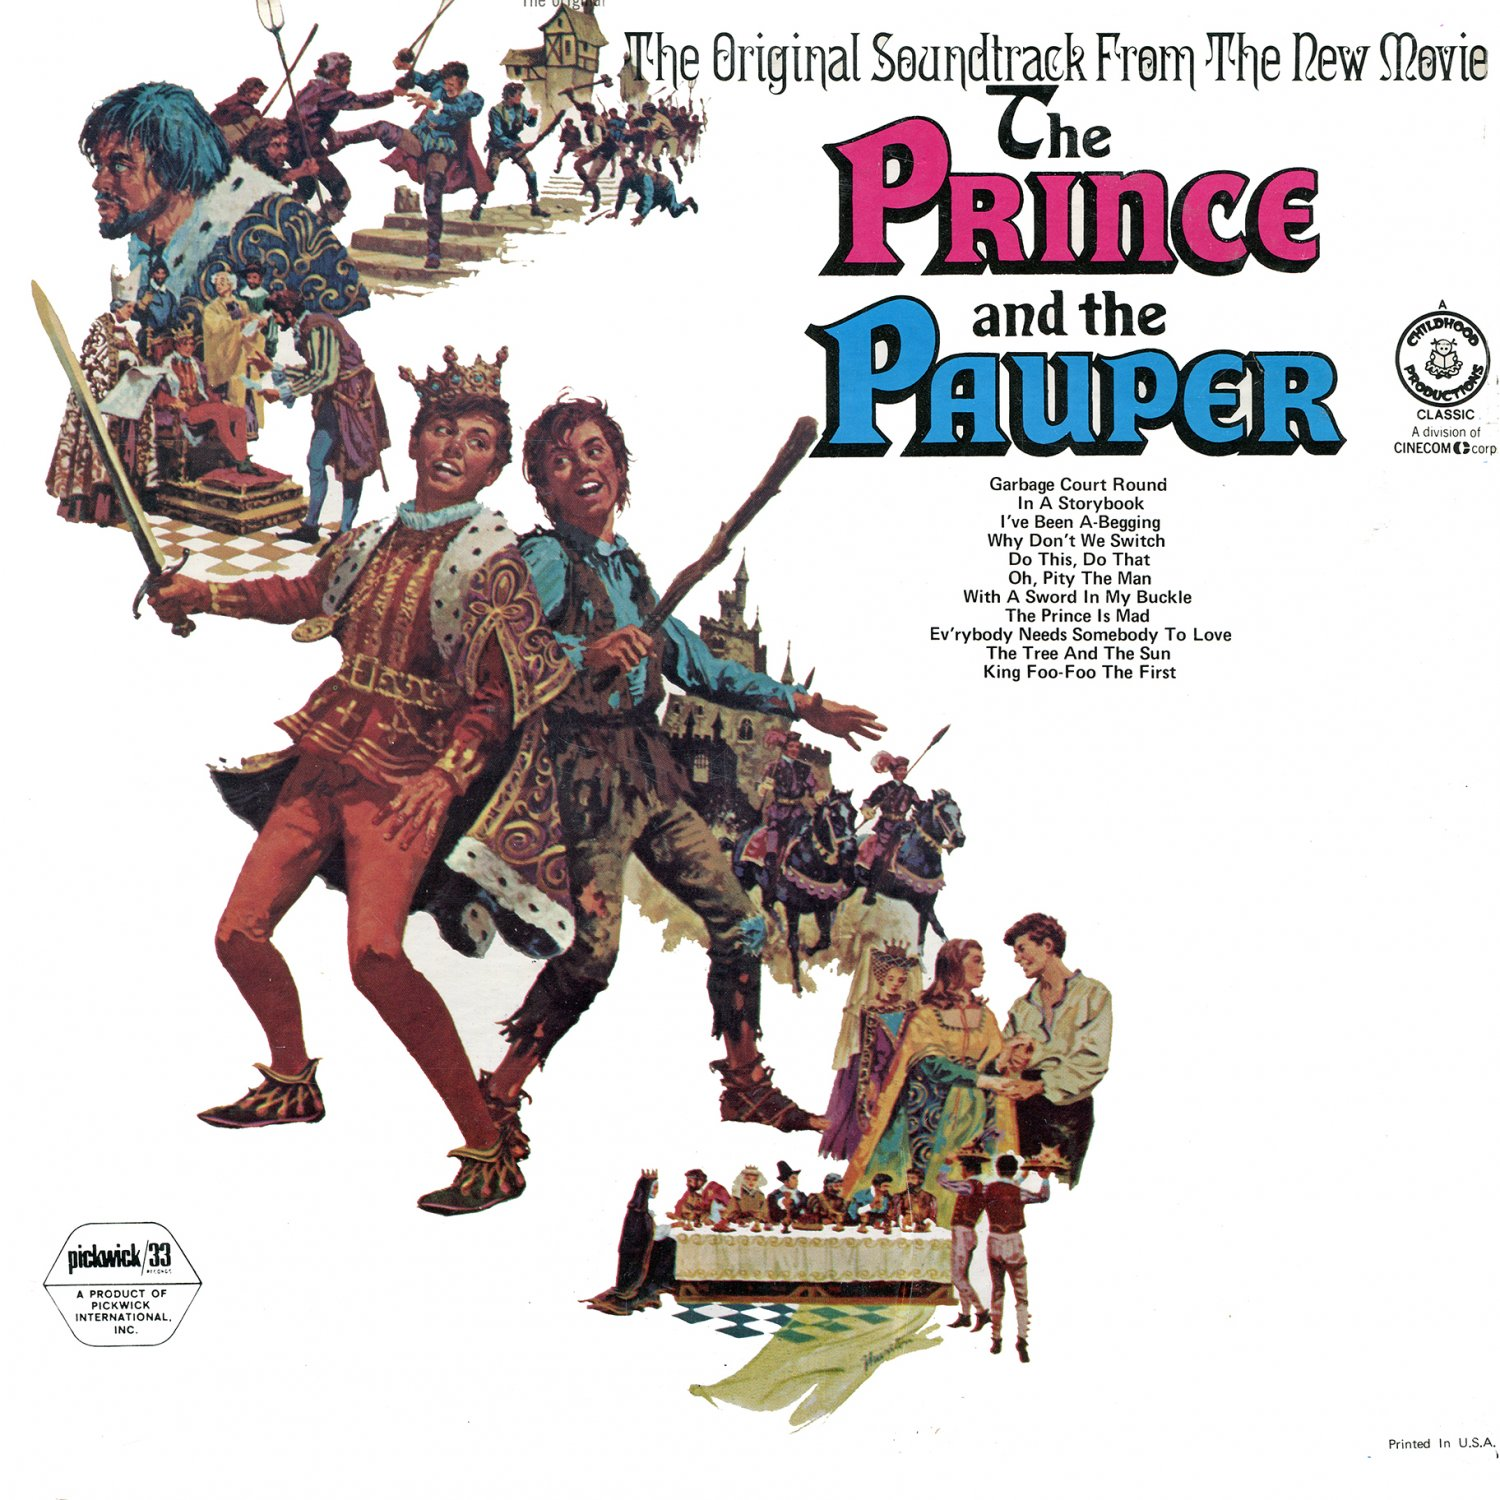 The Prince And The Pauper - Original Soundtrack, George Fischoff OST LP/CD